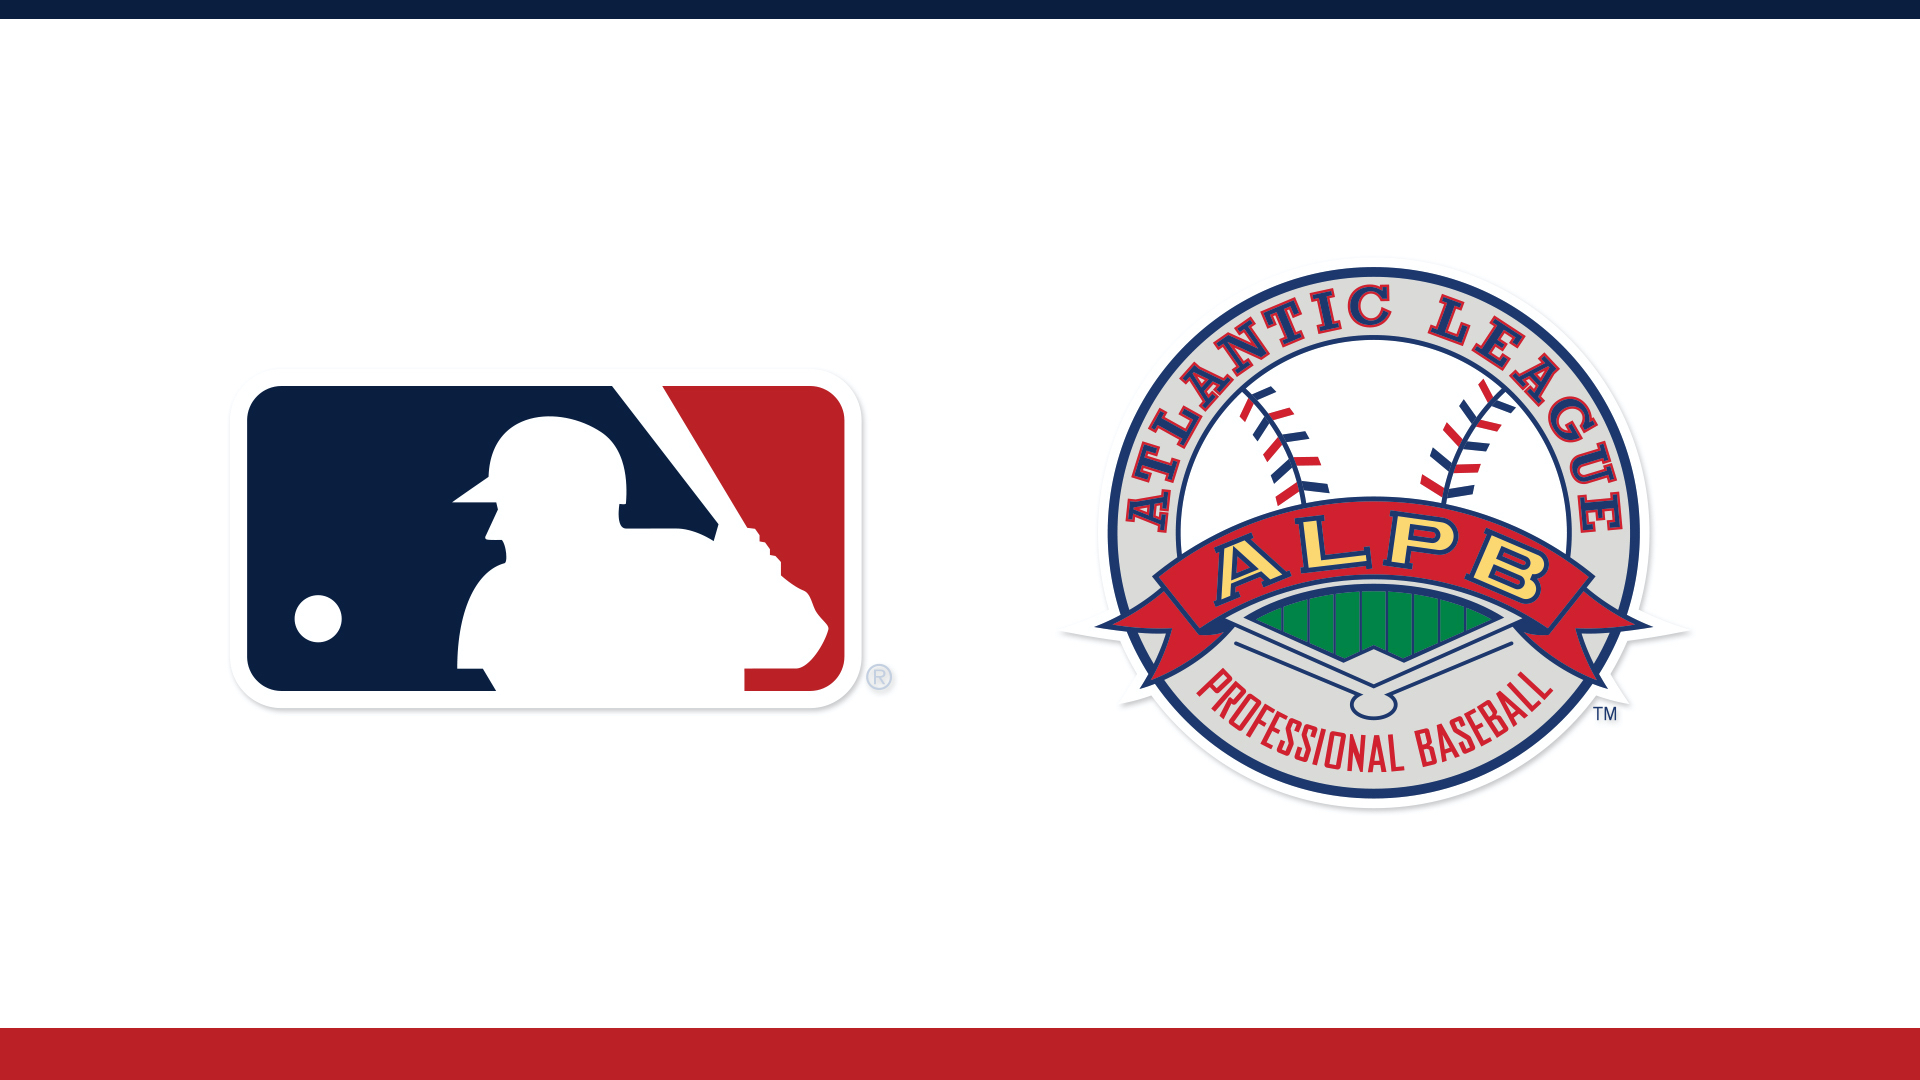 MLB, ATLANTIC LEAGUE ANNOUNCE EXPERIMENTAL PLAYING RULES FOR 2021 ATLANTIC LEAGUE SEASON